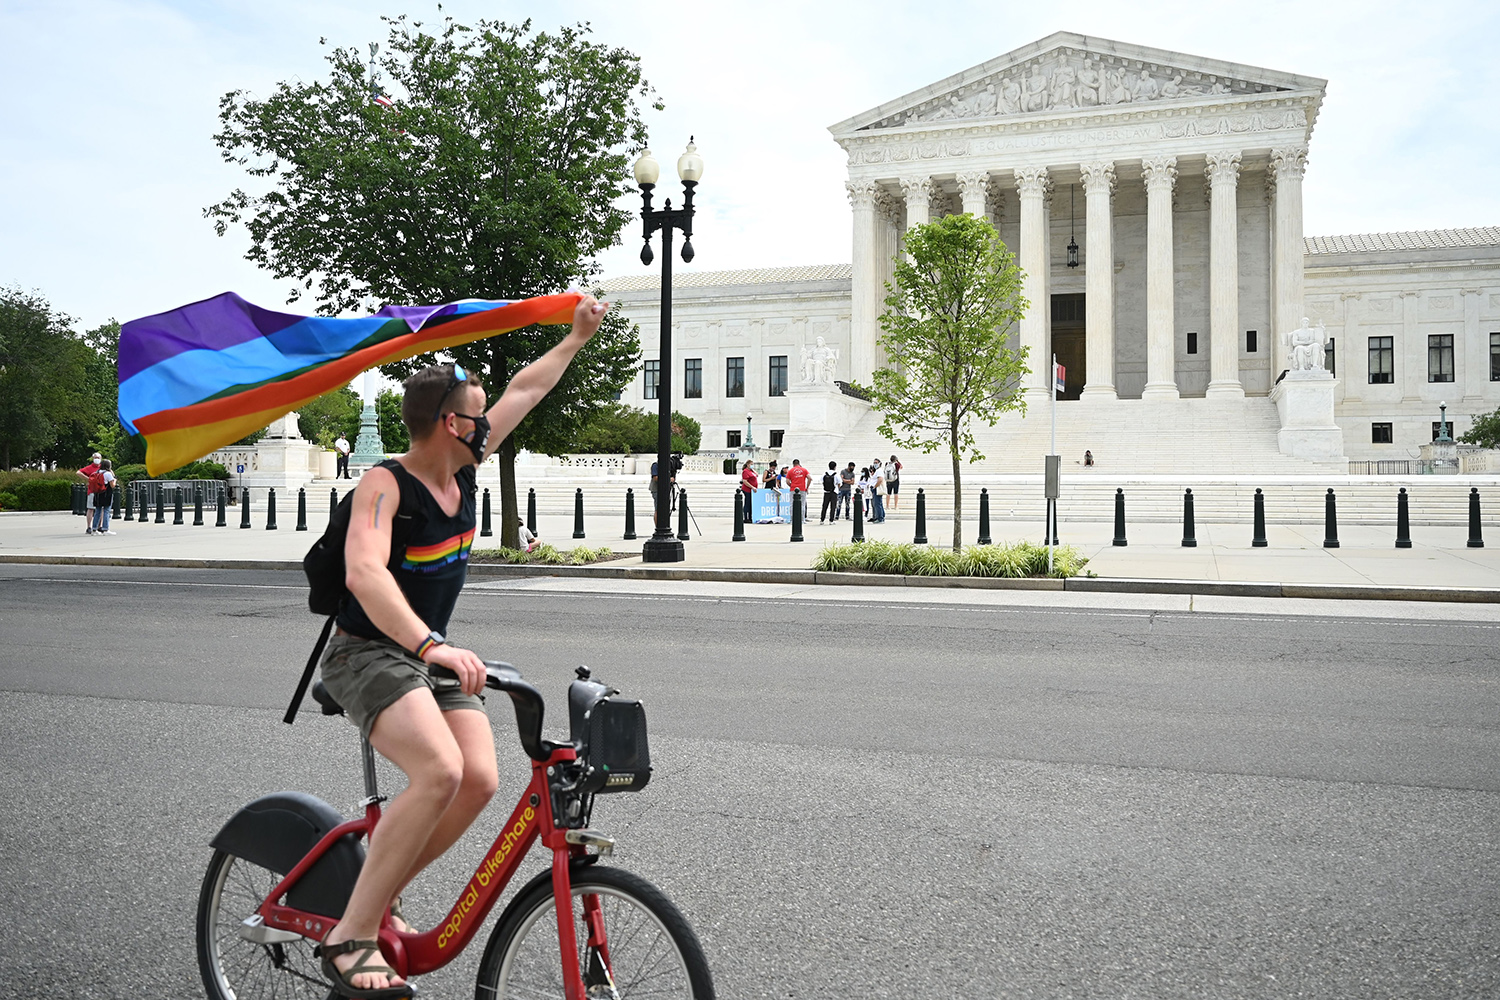 A man waves a rainbow flag as he rides by the U.S. Supreme Court in Washington on June 15 after its decision to protect LGBTQ workers from workplace discrimination. JIM WATSON/AFP via Getty Images